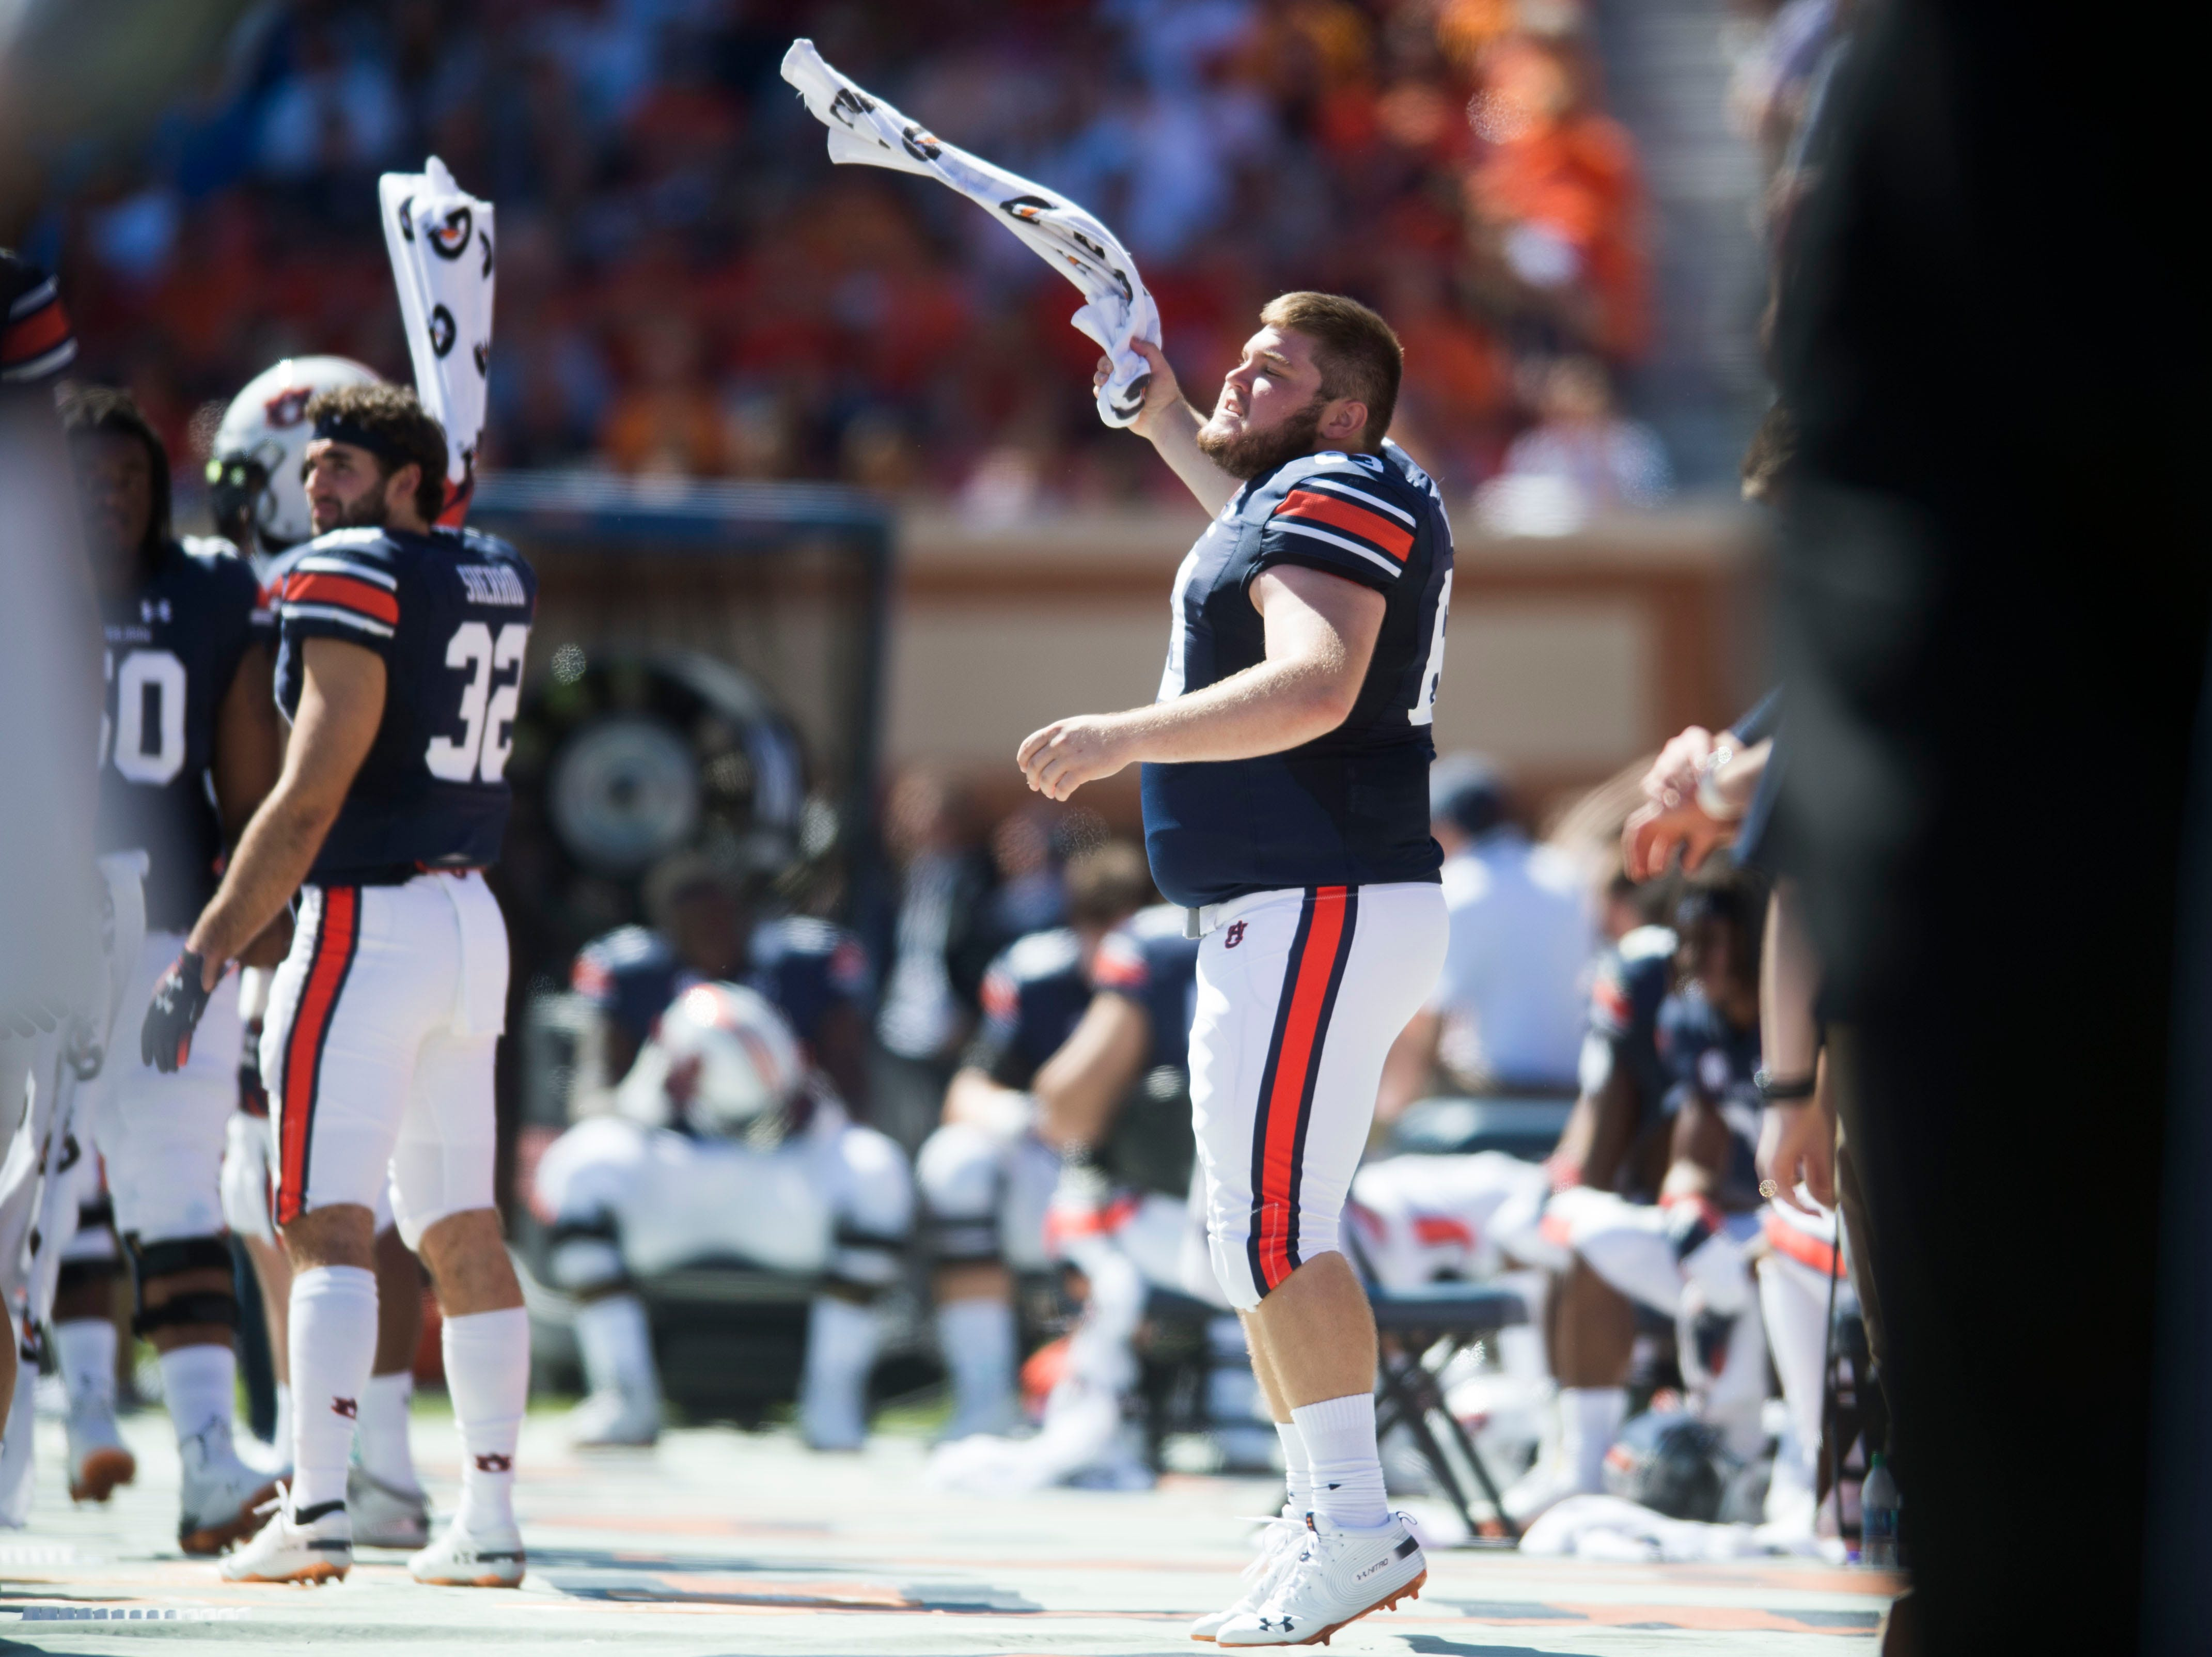 Auburn players rally the crowd on the bench during a game between Tennessee and Auburn at Jordan-Hare Stadium in Auburn, Ala. Saturday, Oct. 13, 2018.